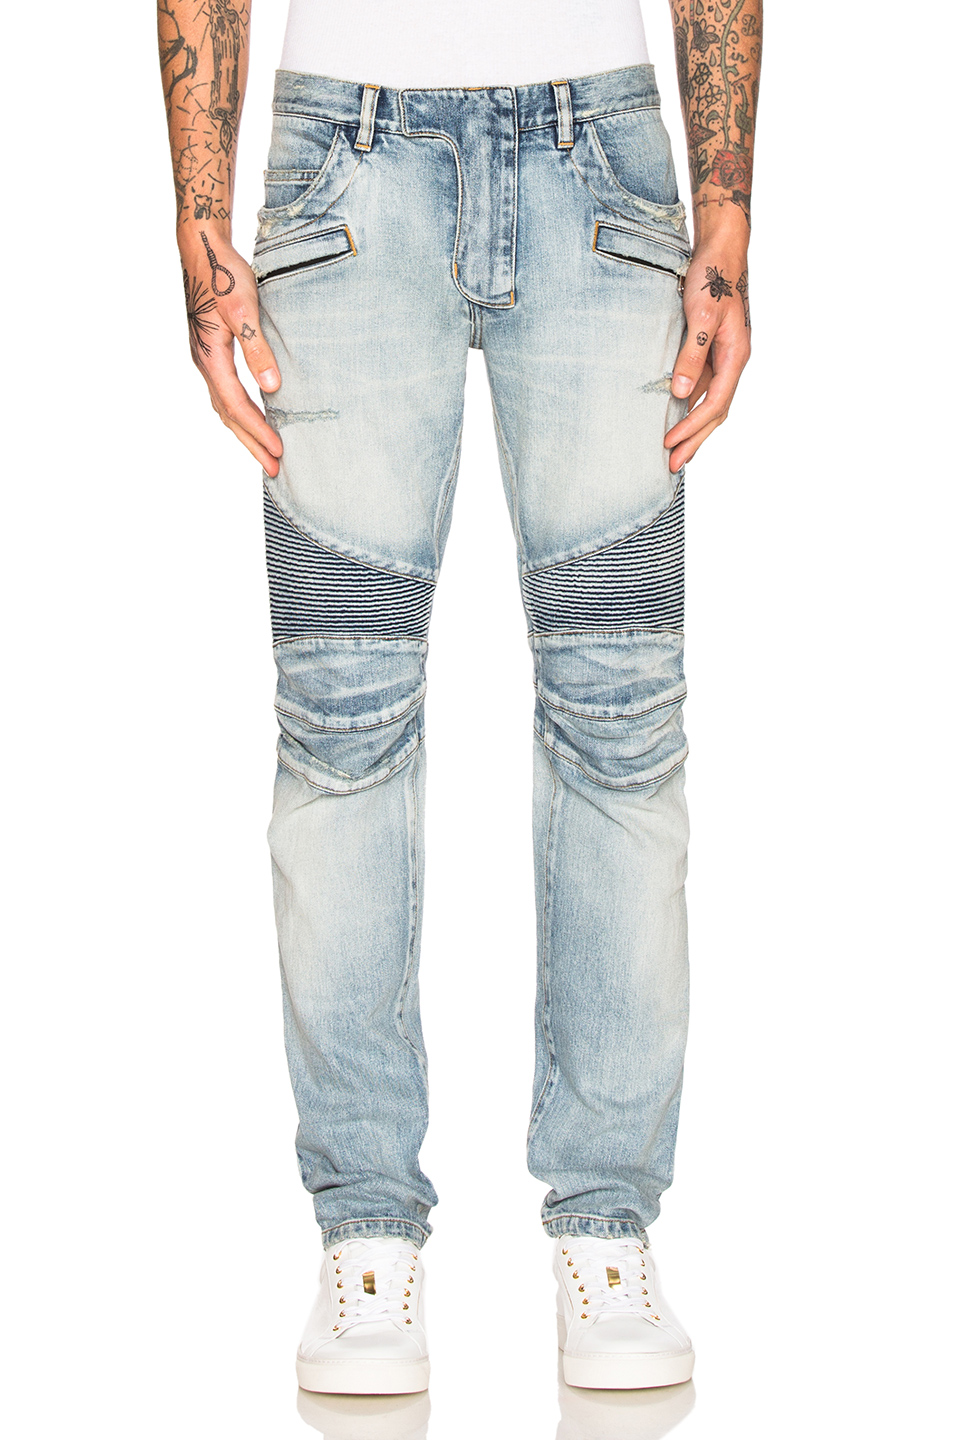 BALMAIN Slim Biker Jeans in Blue